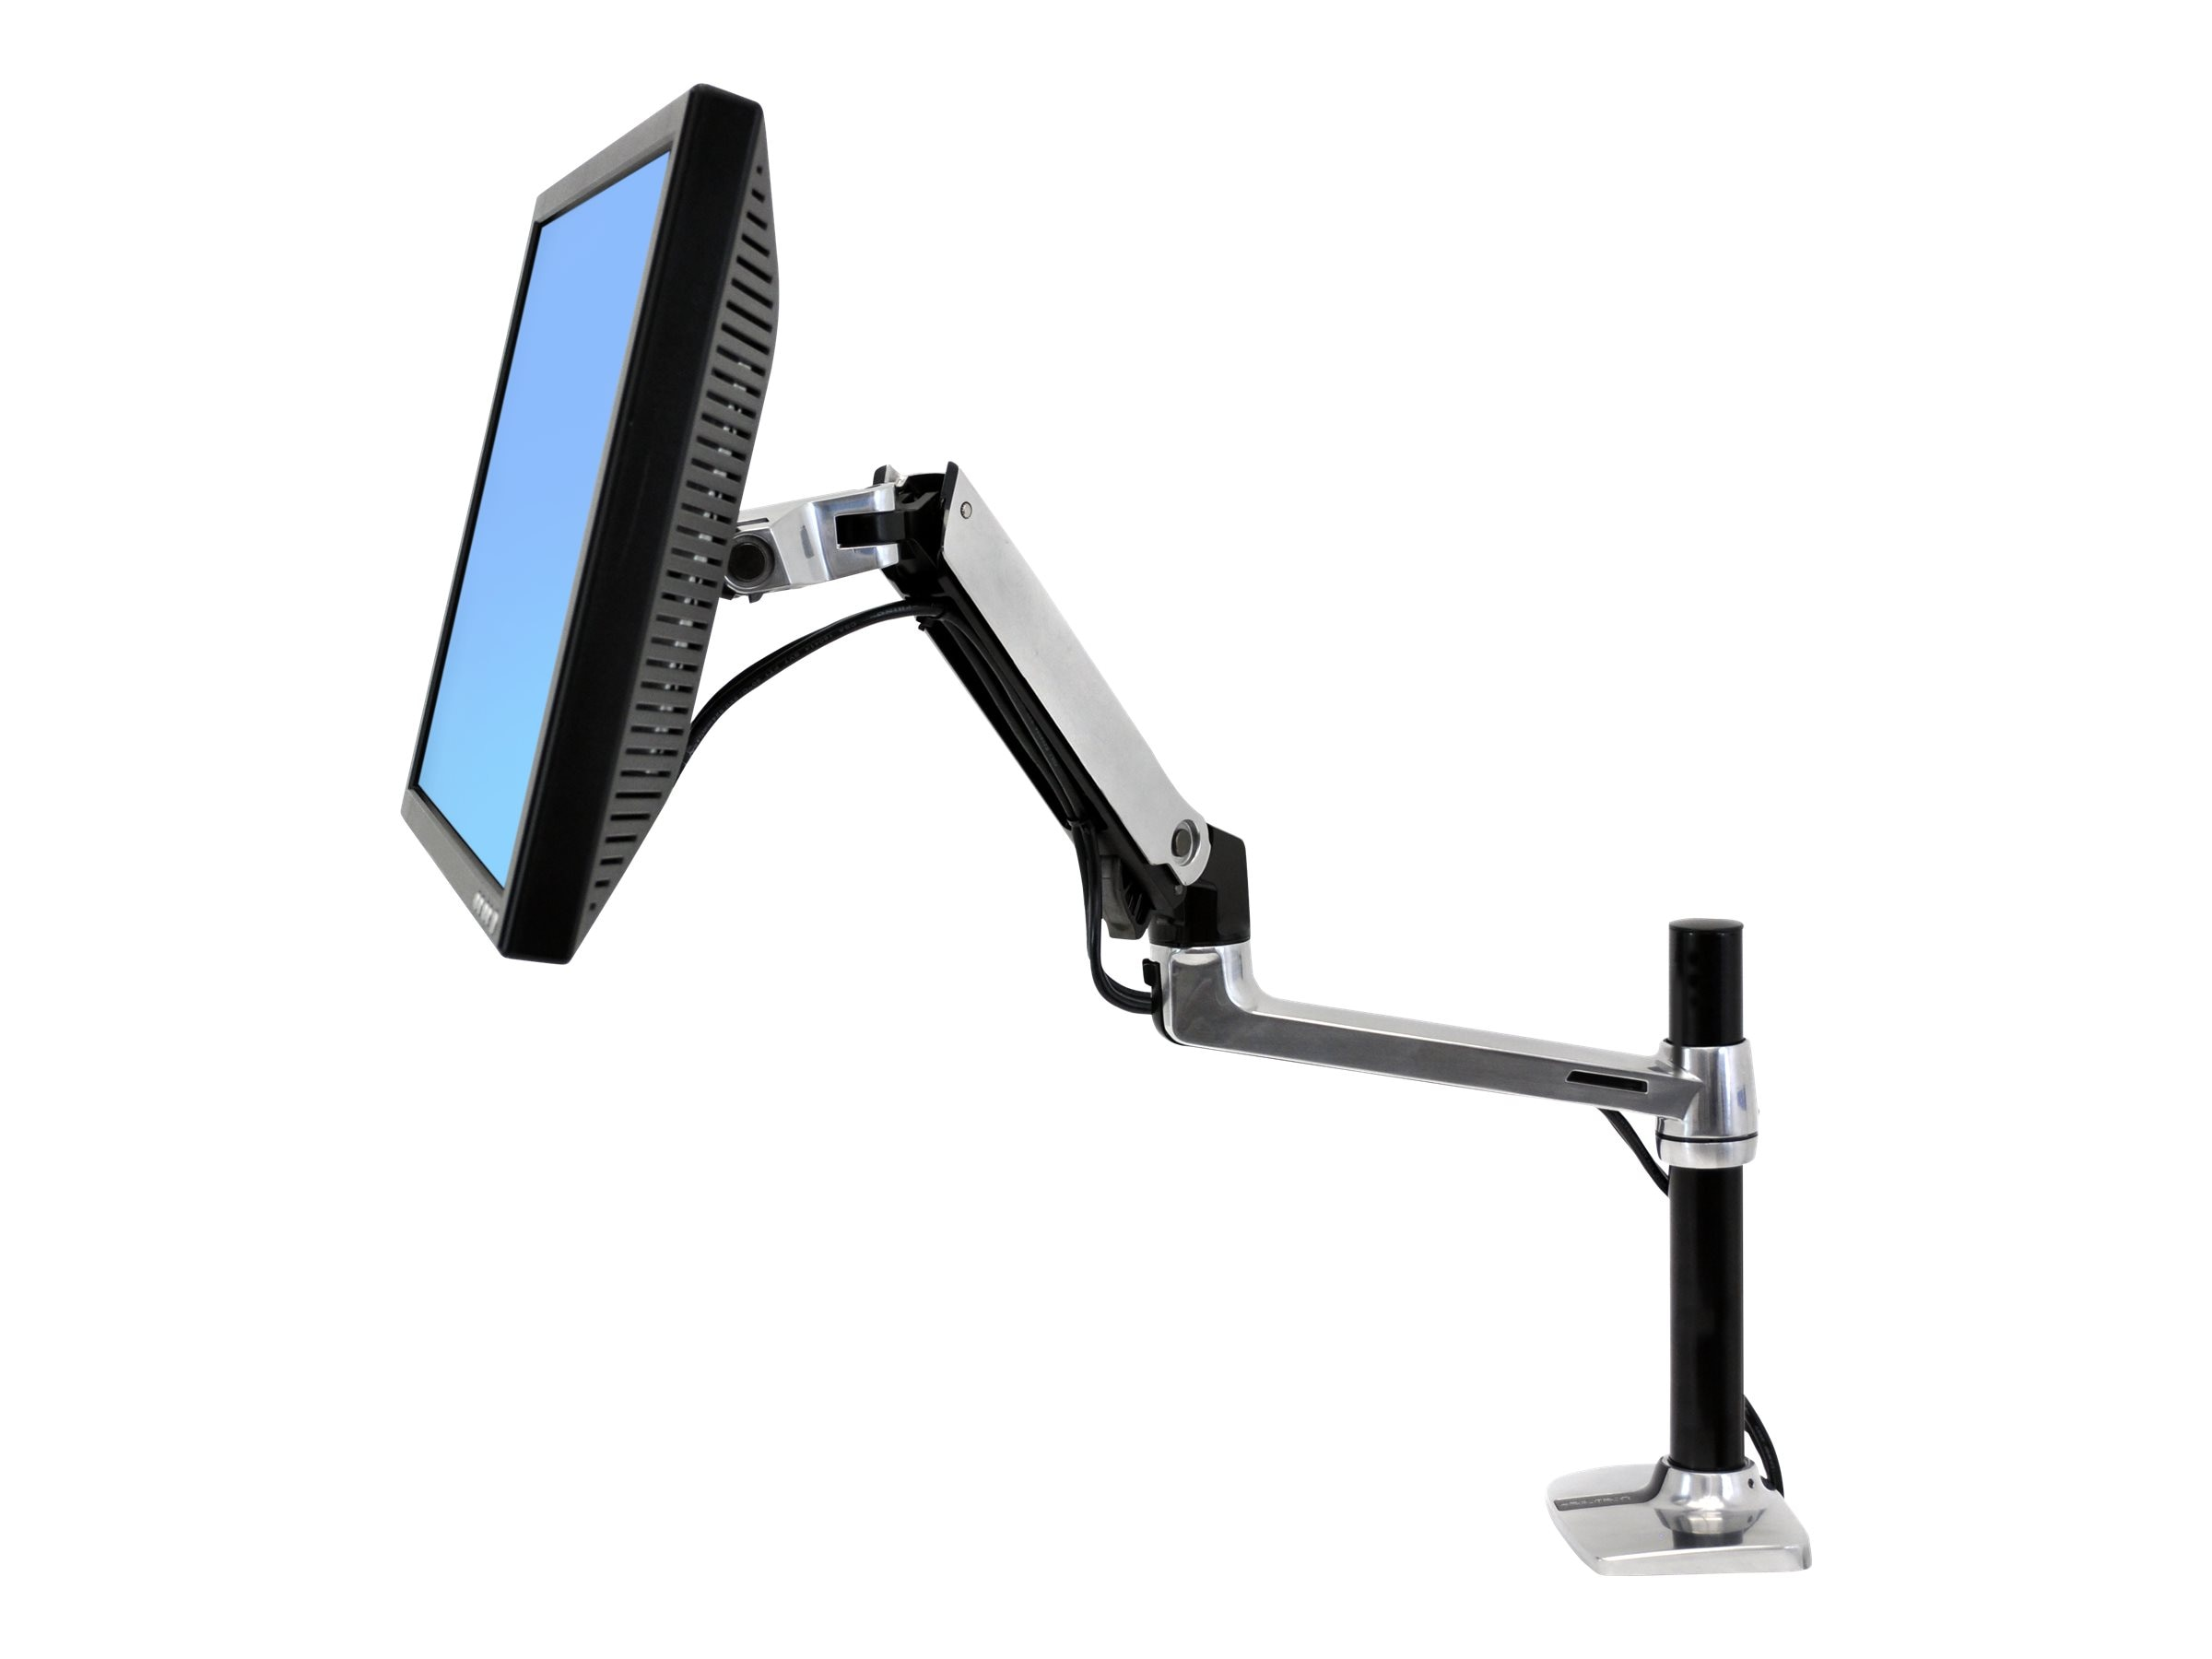 Ergotron LX Desk Mount LCD Arm with Tall Pole, 45-295-026